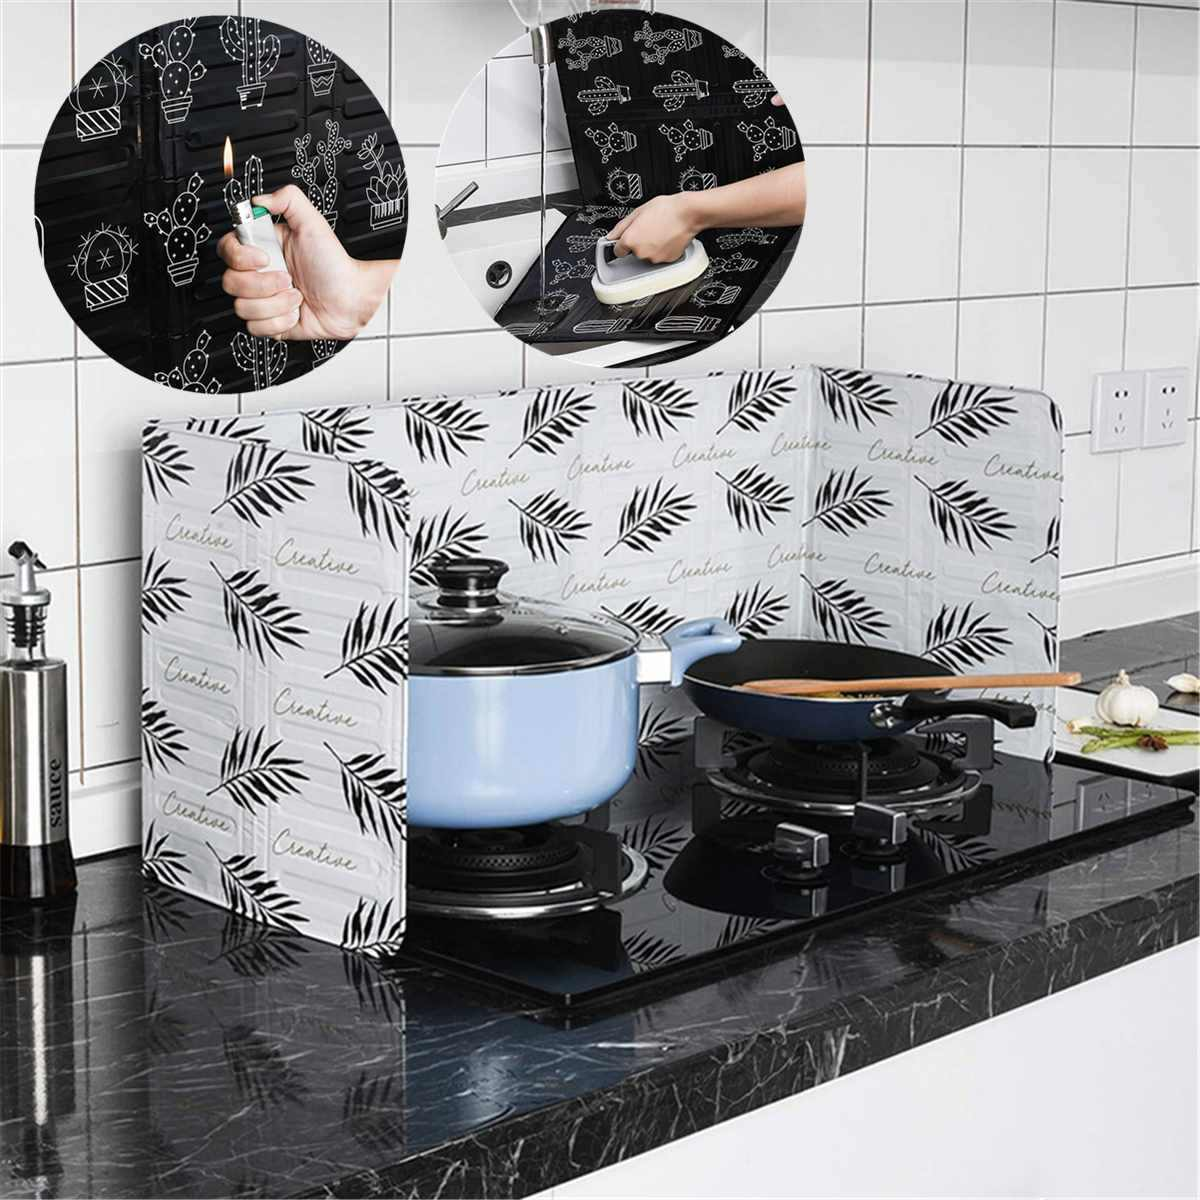 Kitchen Oil Baffle Plate 3 Sided Splatter Guard Stove Oil Heat Insulation Sheet Aluminum Foil Oil Splash Proof Cooking Tool